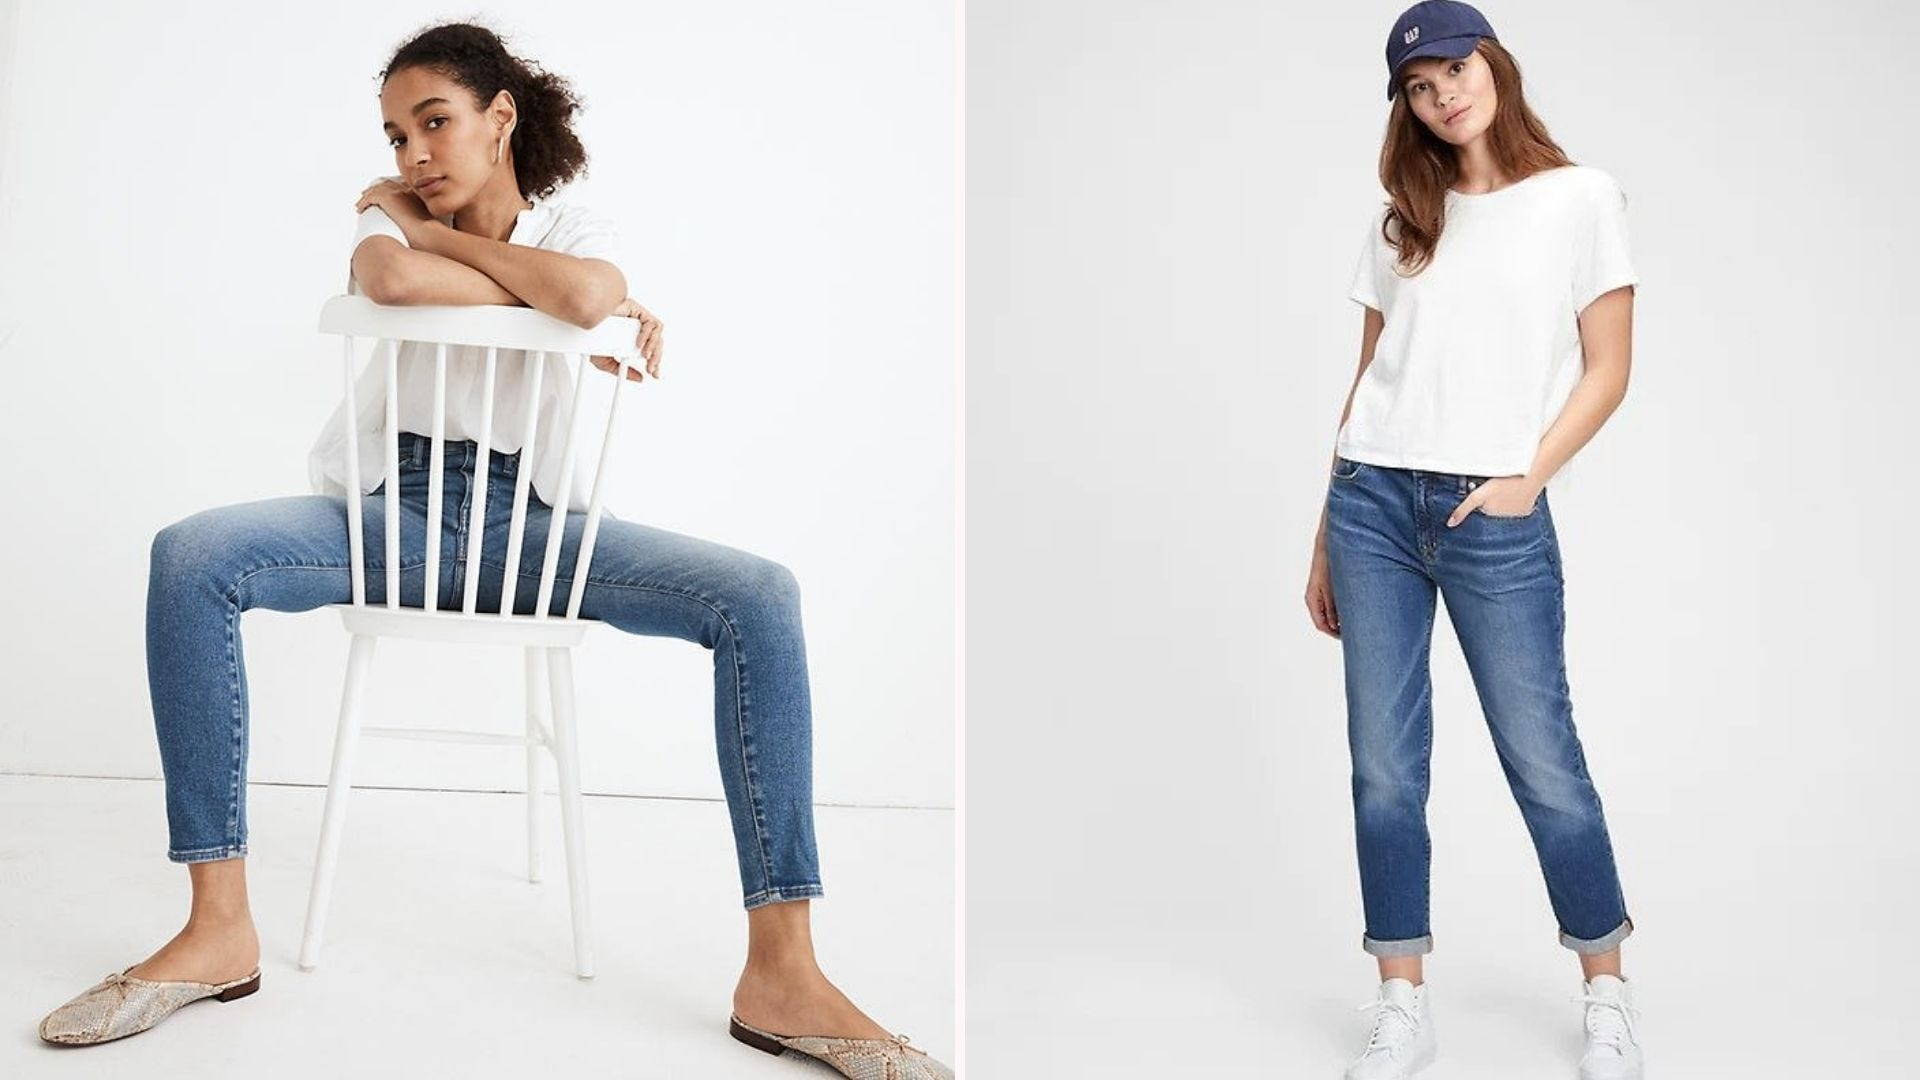 Two women wearing cropped jeans and white tops